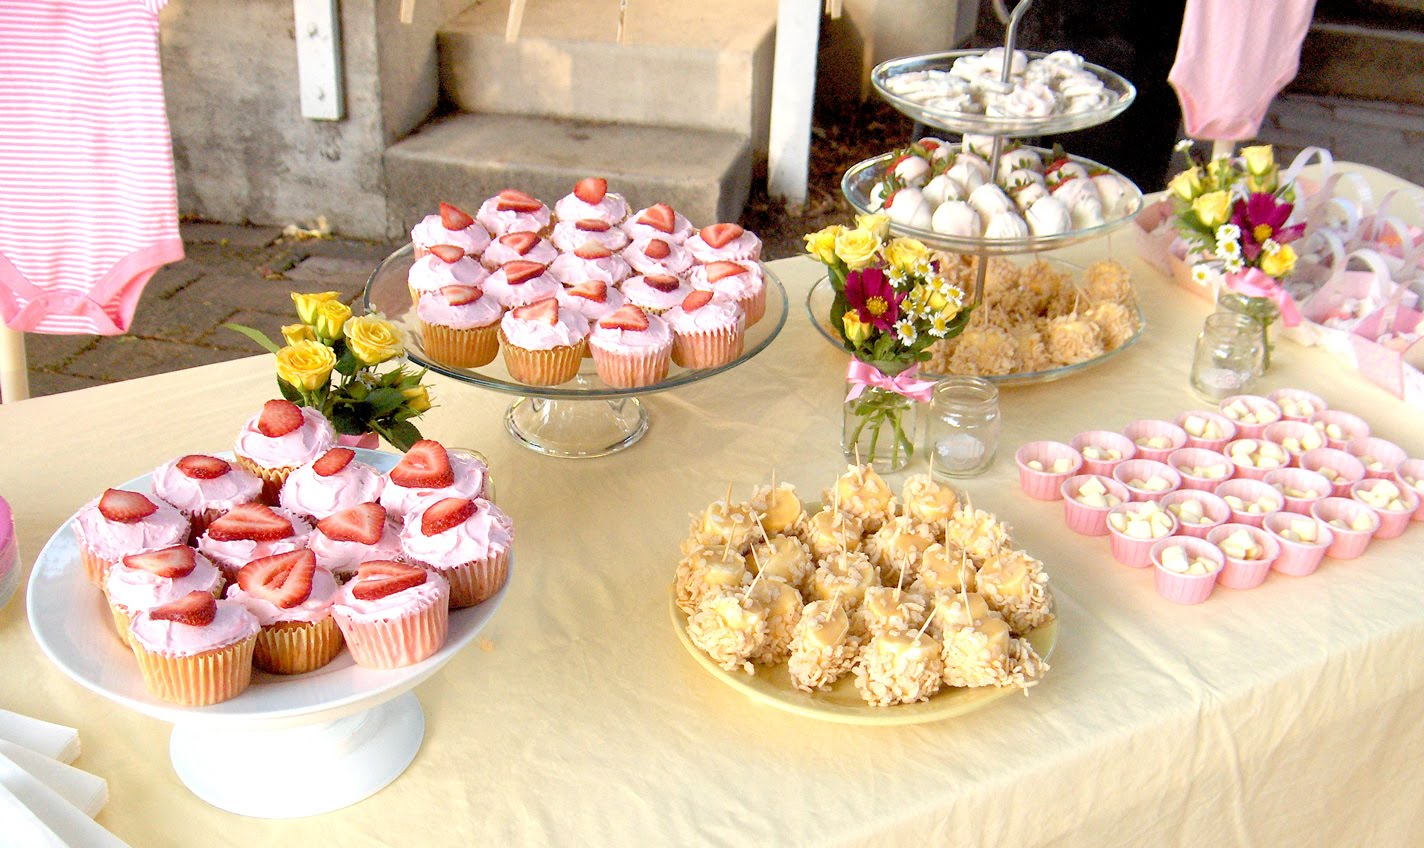 Baby shower food ideas baby shower menu ideas cindys baby shower forumfinder Gallery